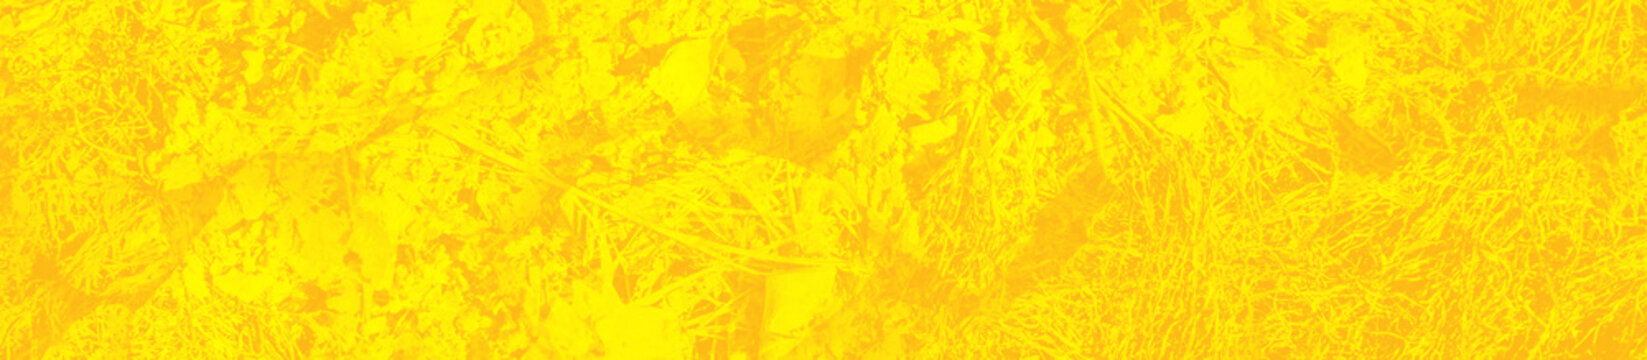 abstract yellow bright background for design